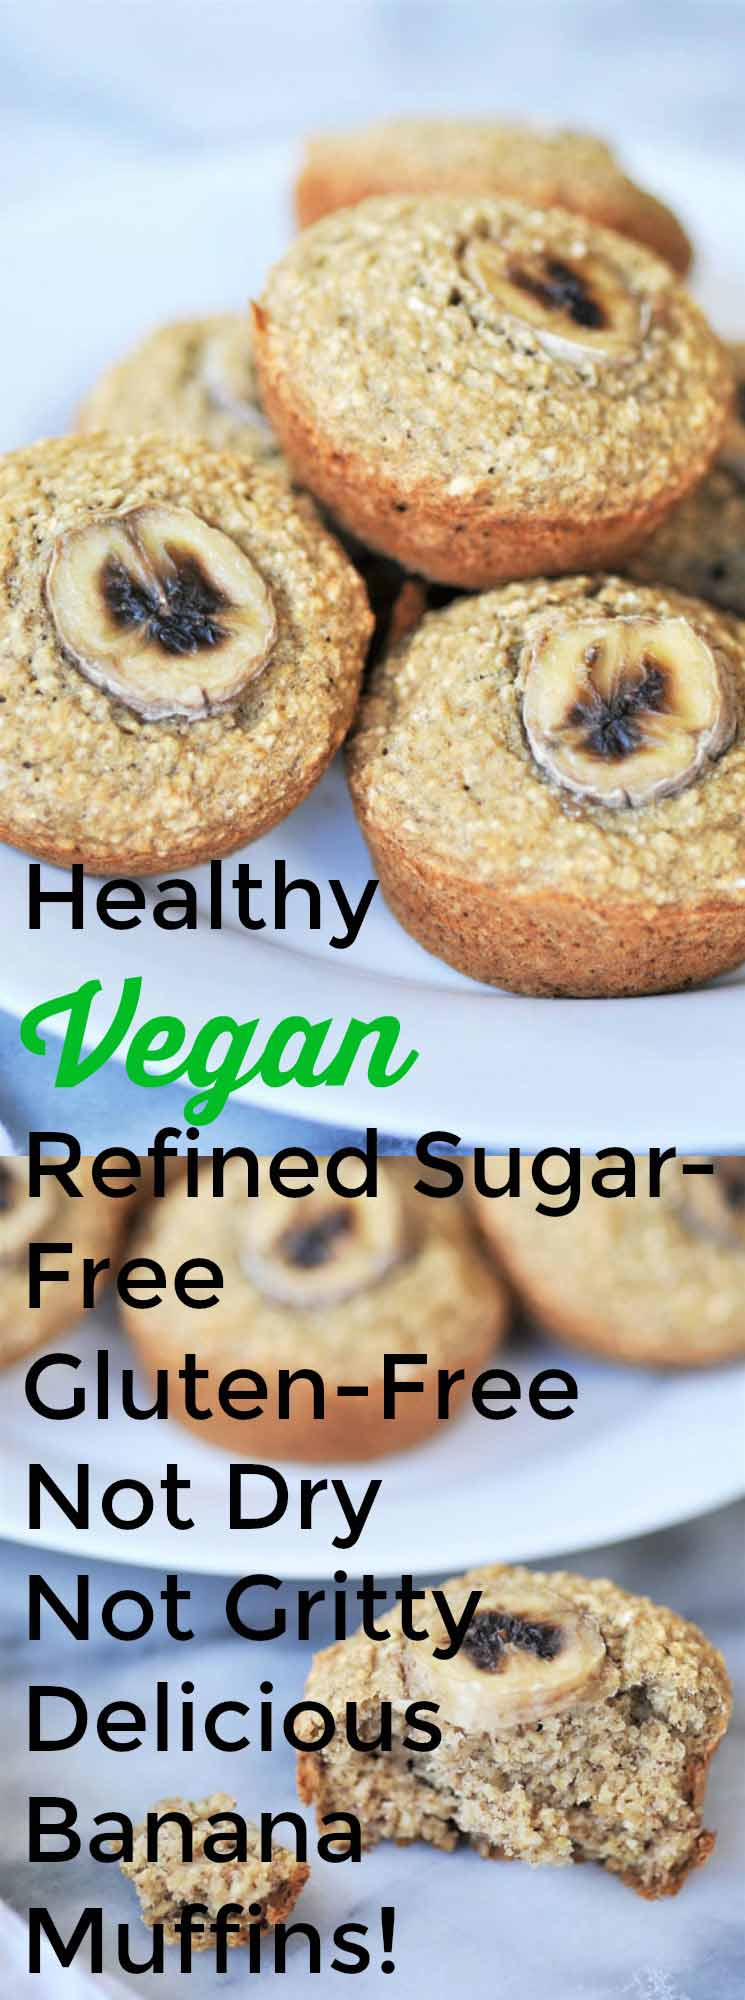 Healthy vegan & gluten-free banana muffins collage for Pinterest.